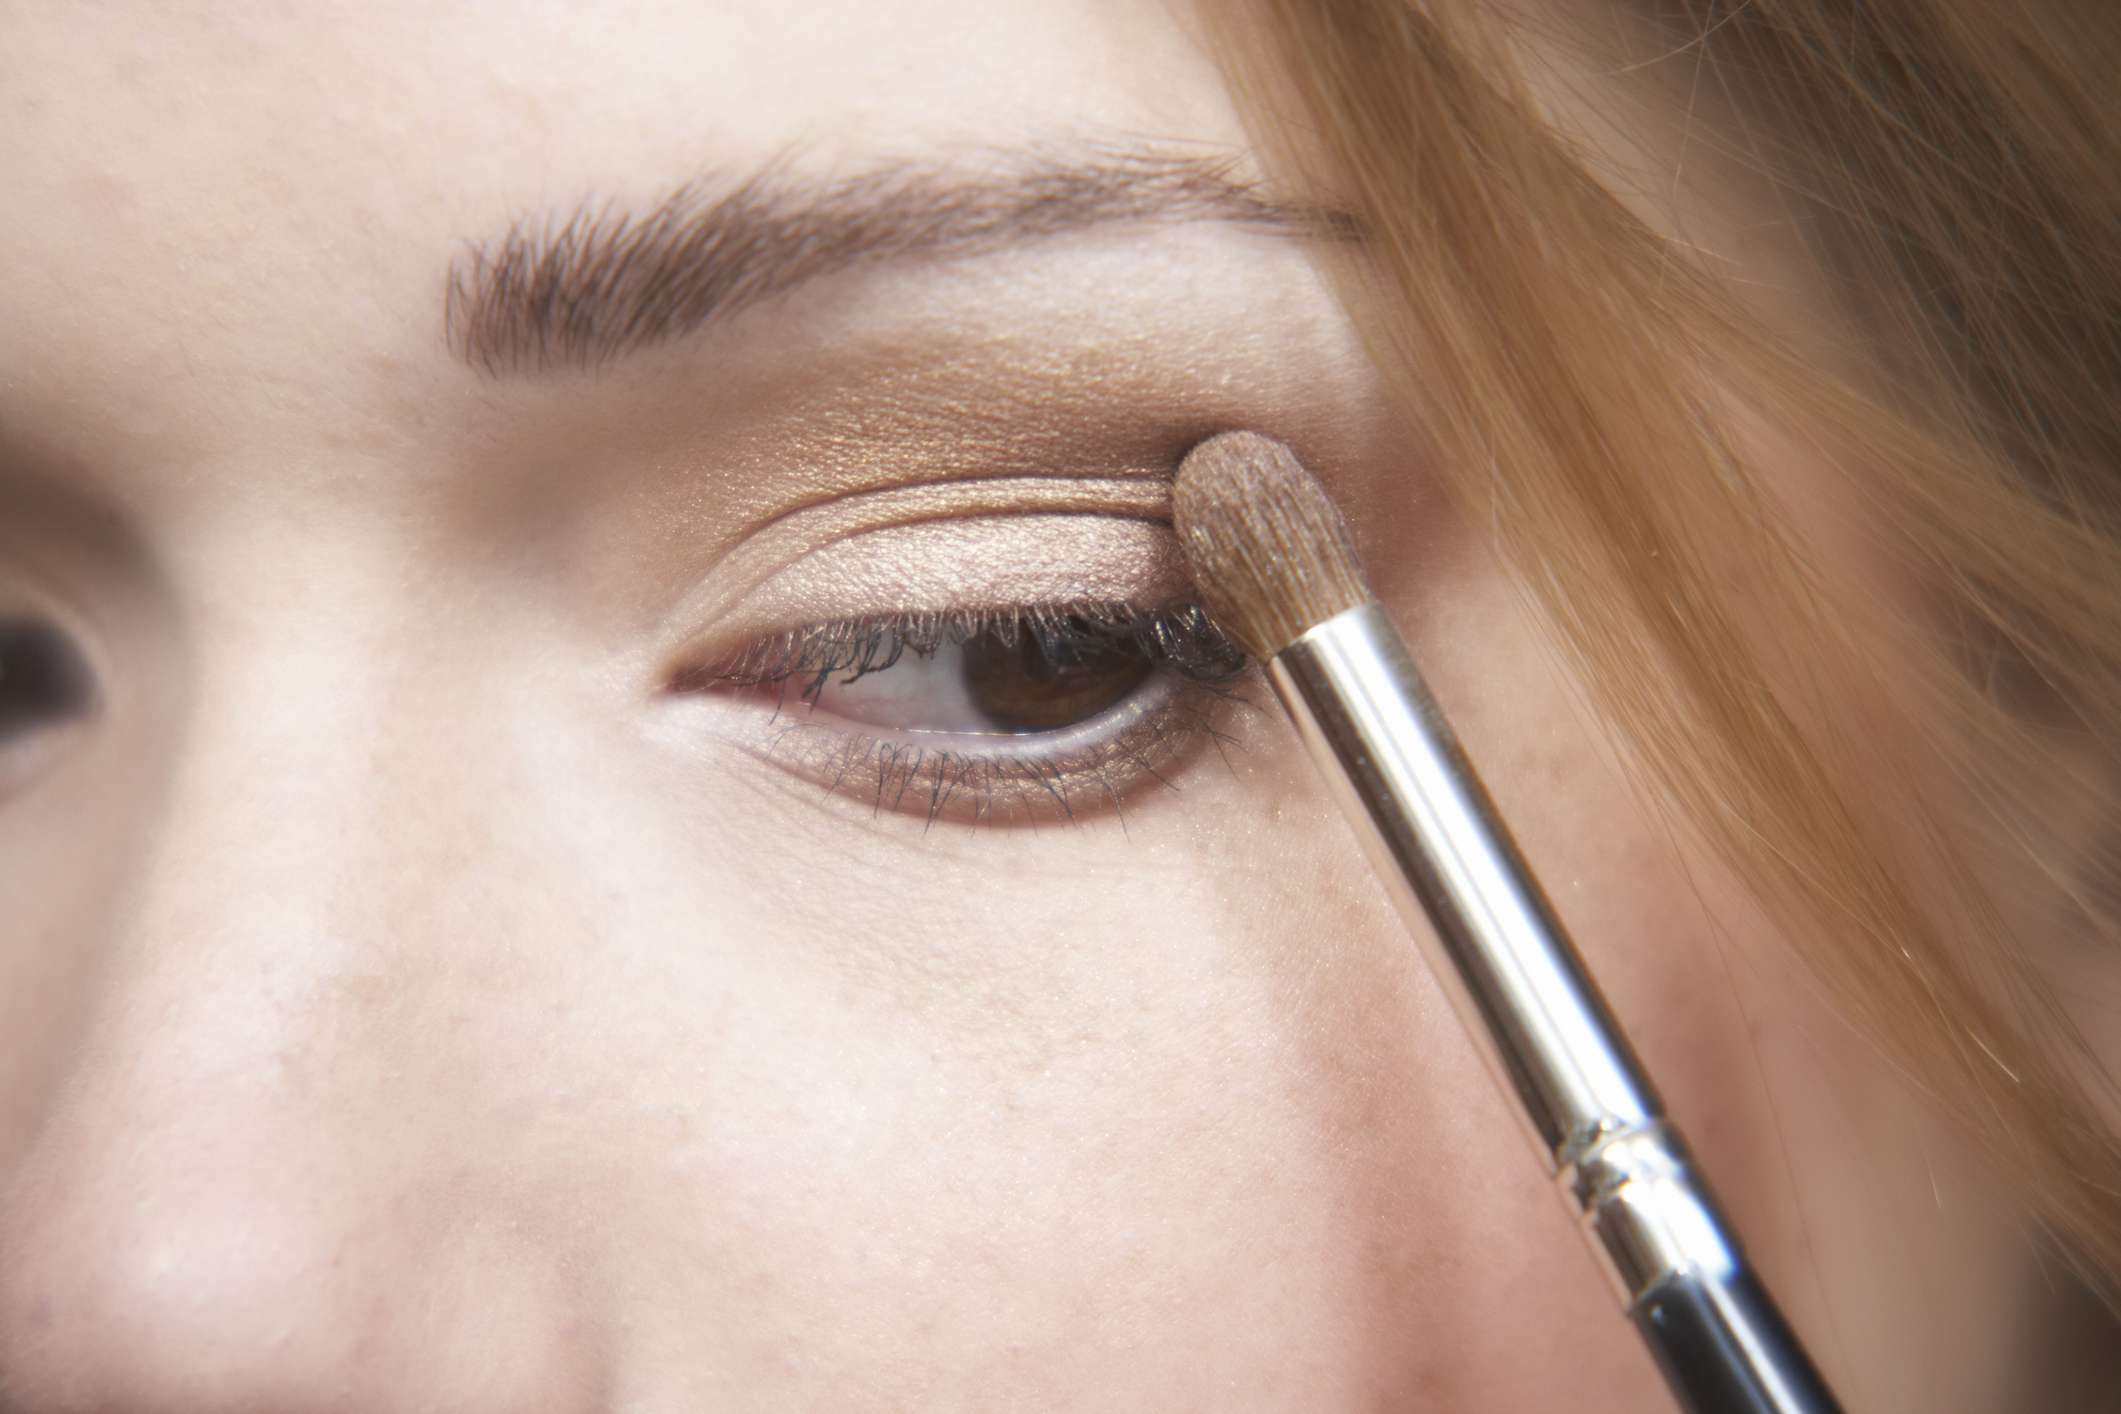 A woman applies eyeshadow on her eyelid with a brush.